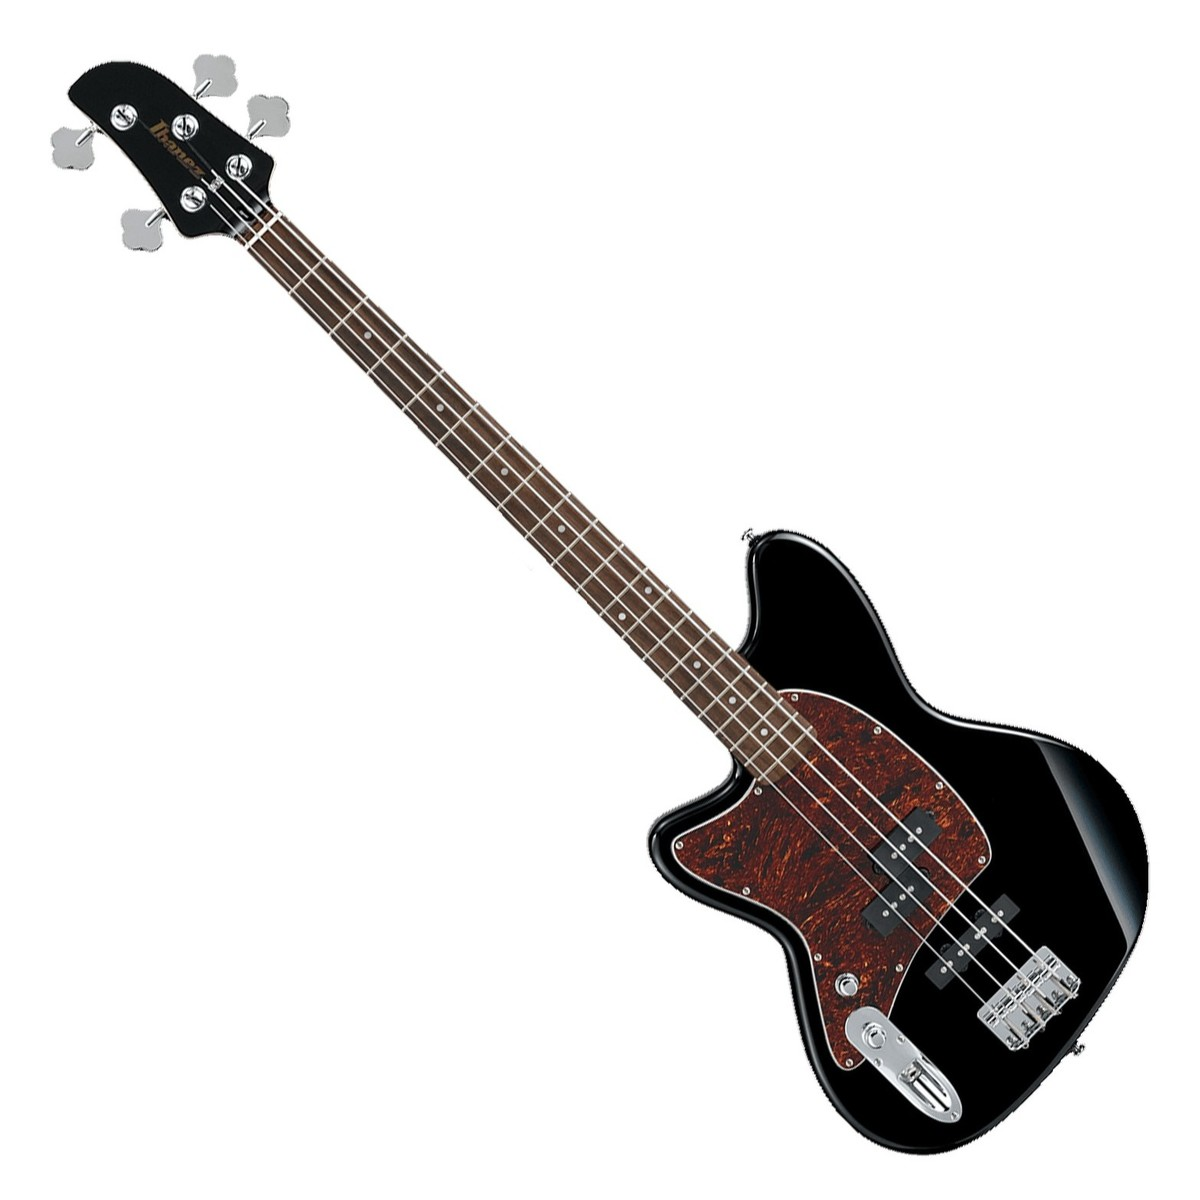 ibanez tmb100 talman bass left handed 2018 black at gear4music. Black Bedroom Furniture Sets. Home Design Ideas